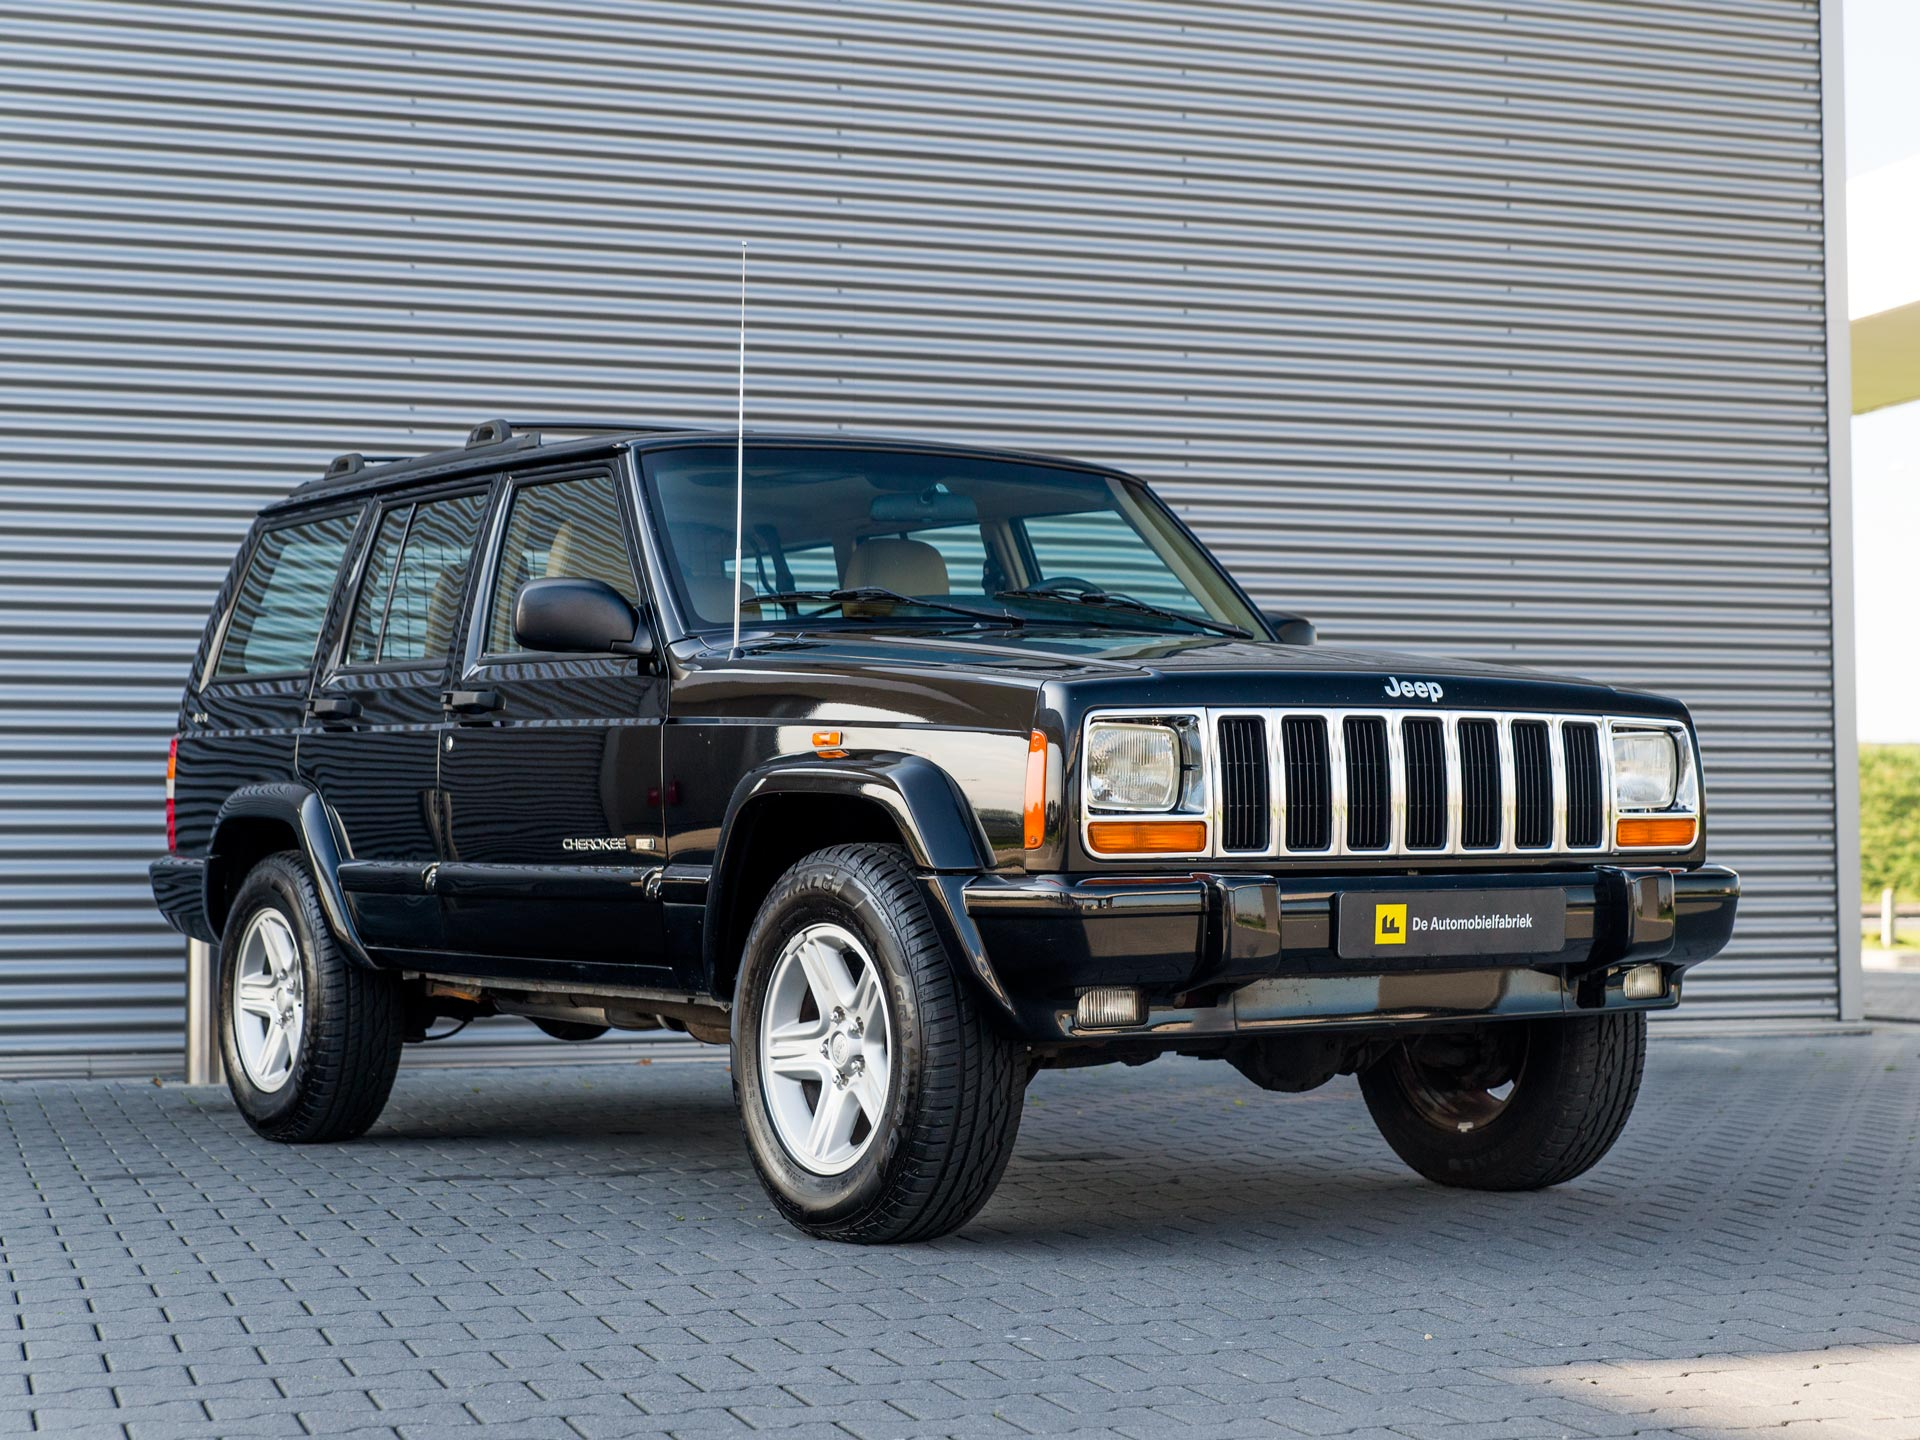 Tweedehands Jeep Cherokee (60th Anniversary) occasion